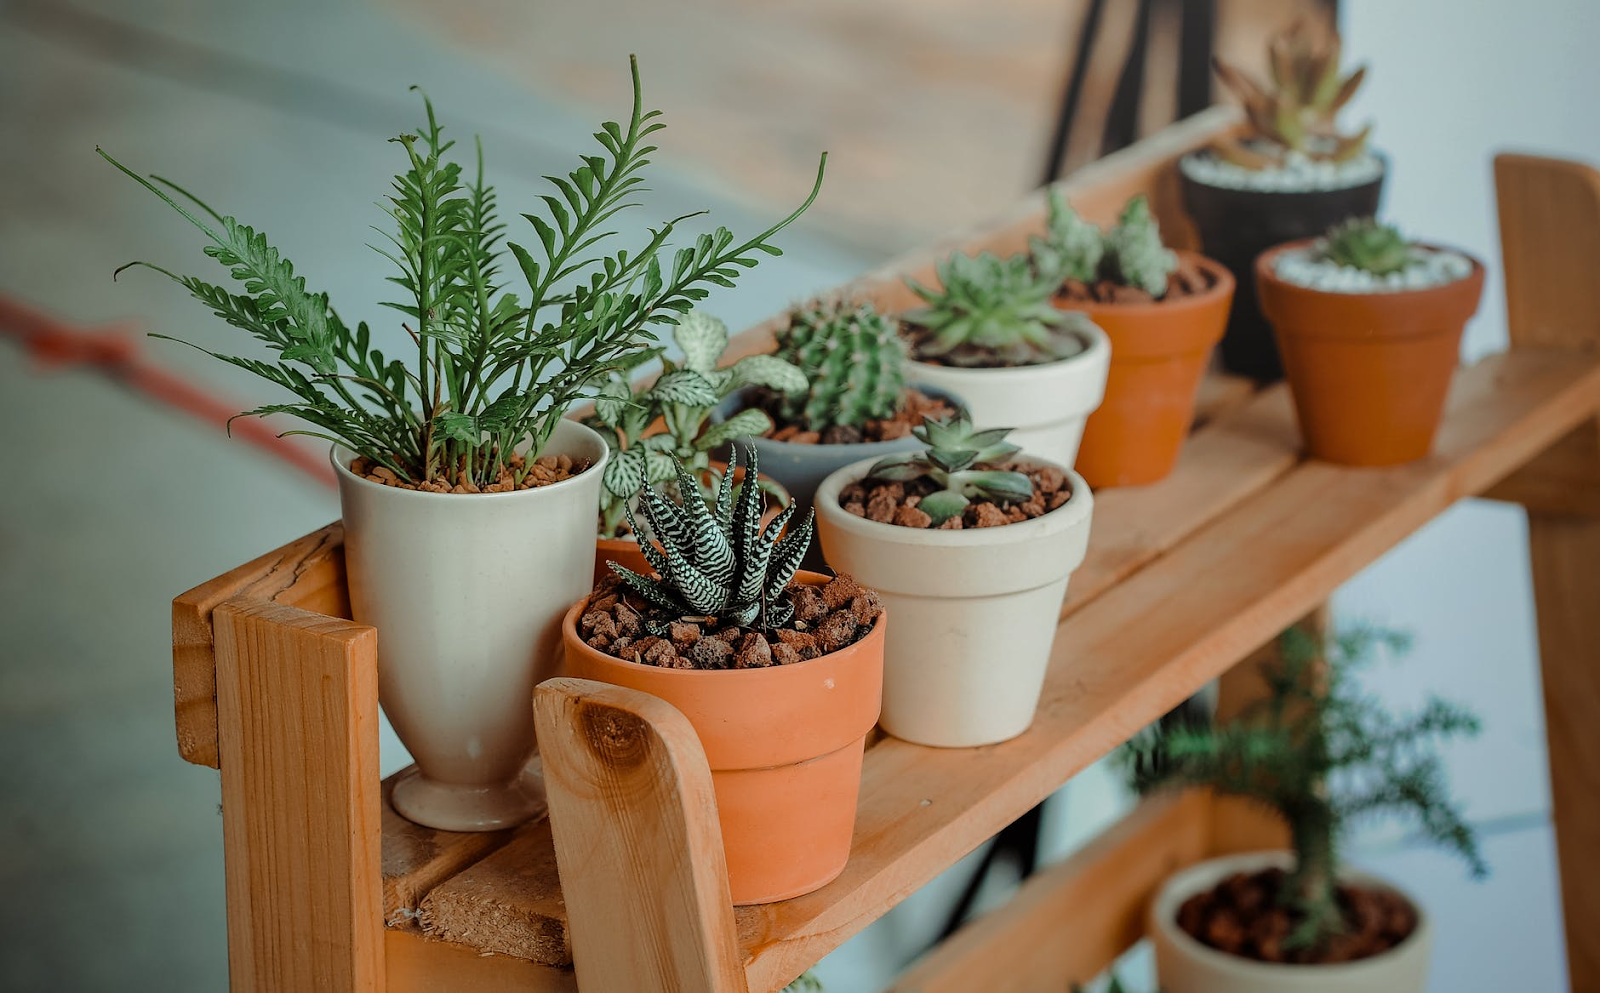 A mini potting bench holding several succulents